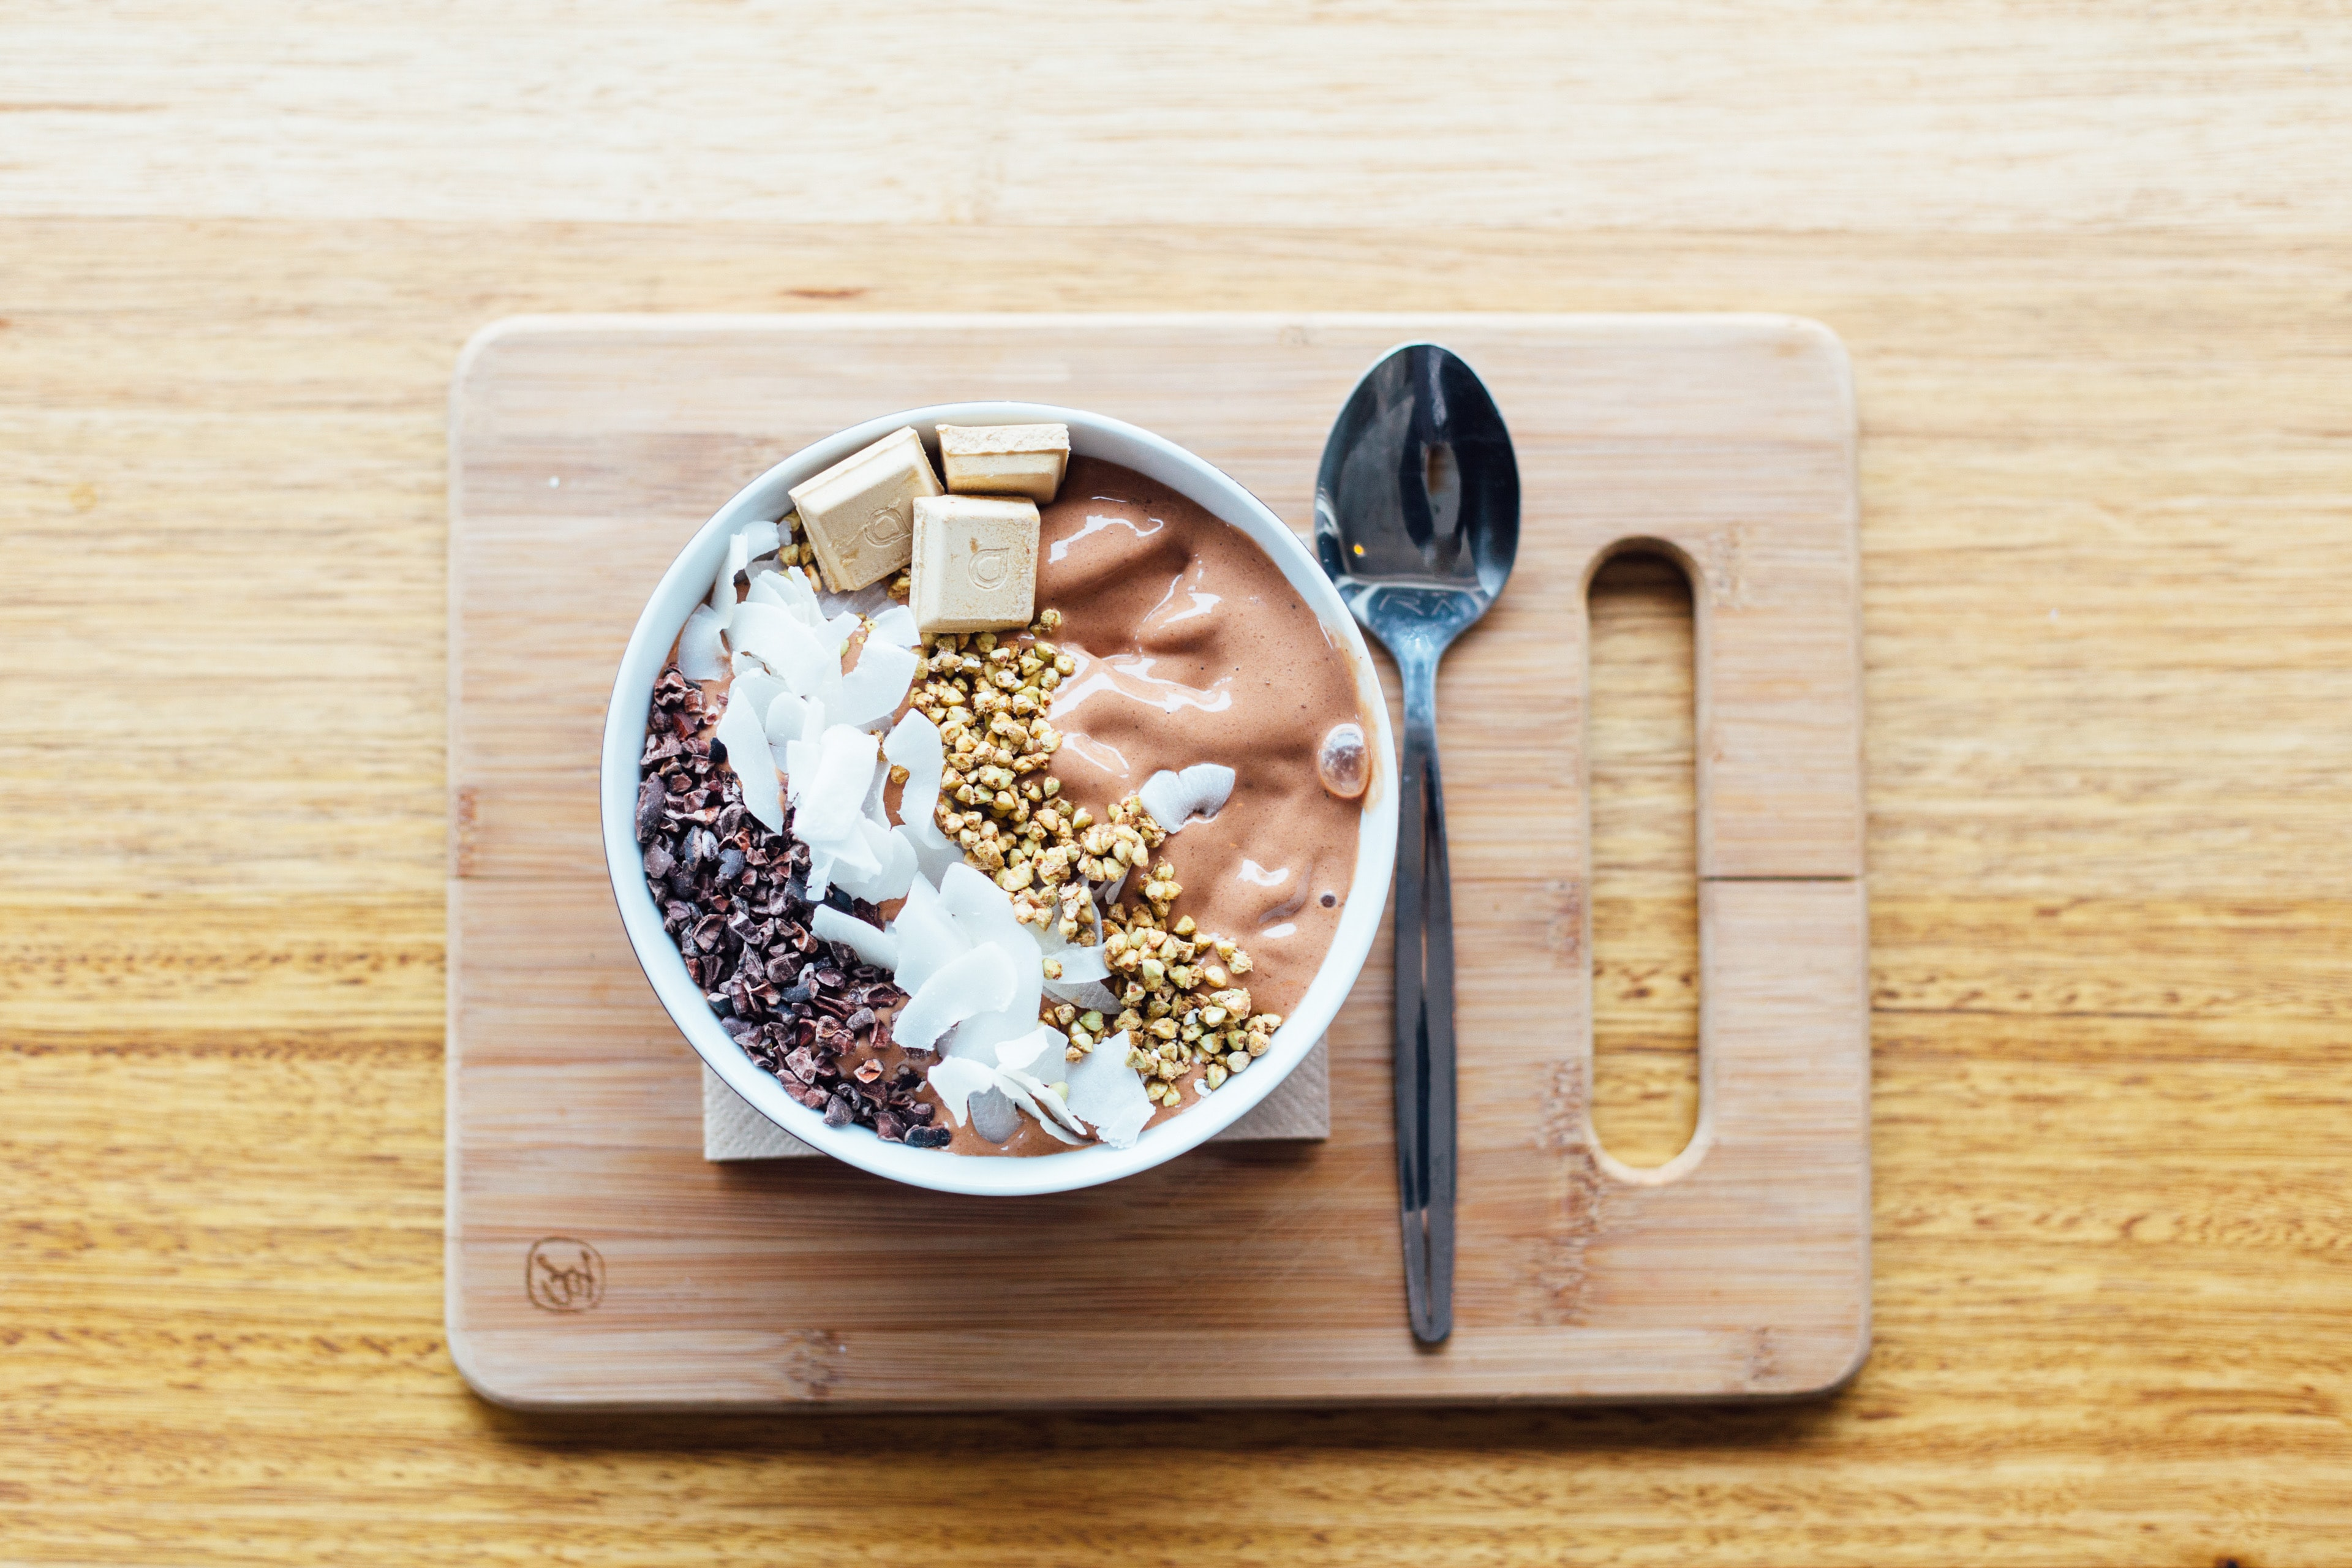 silver spoon and white bowl on brown wooden chopping board